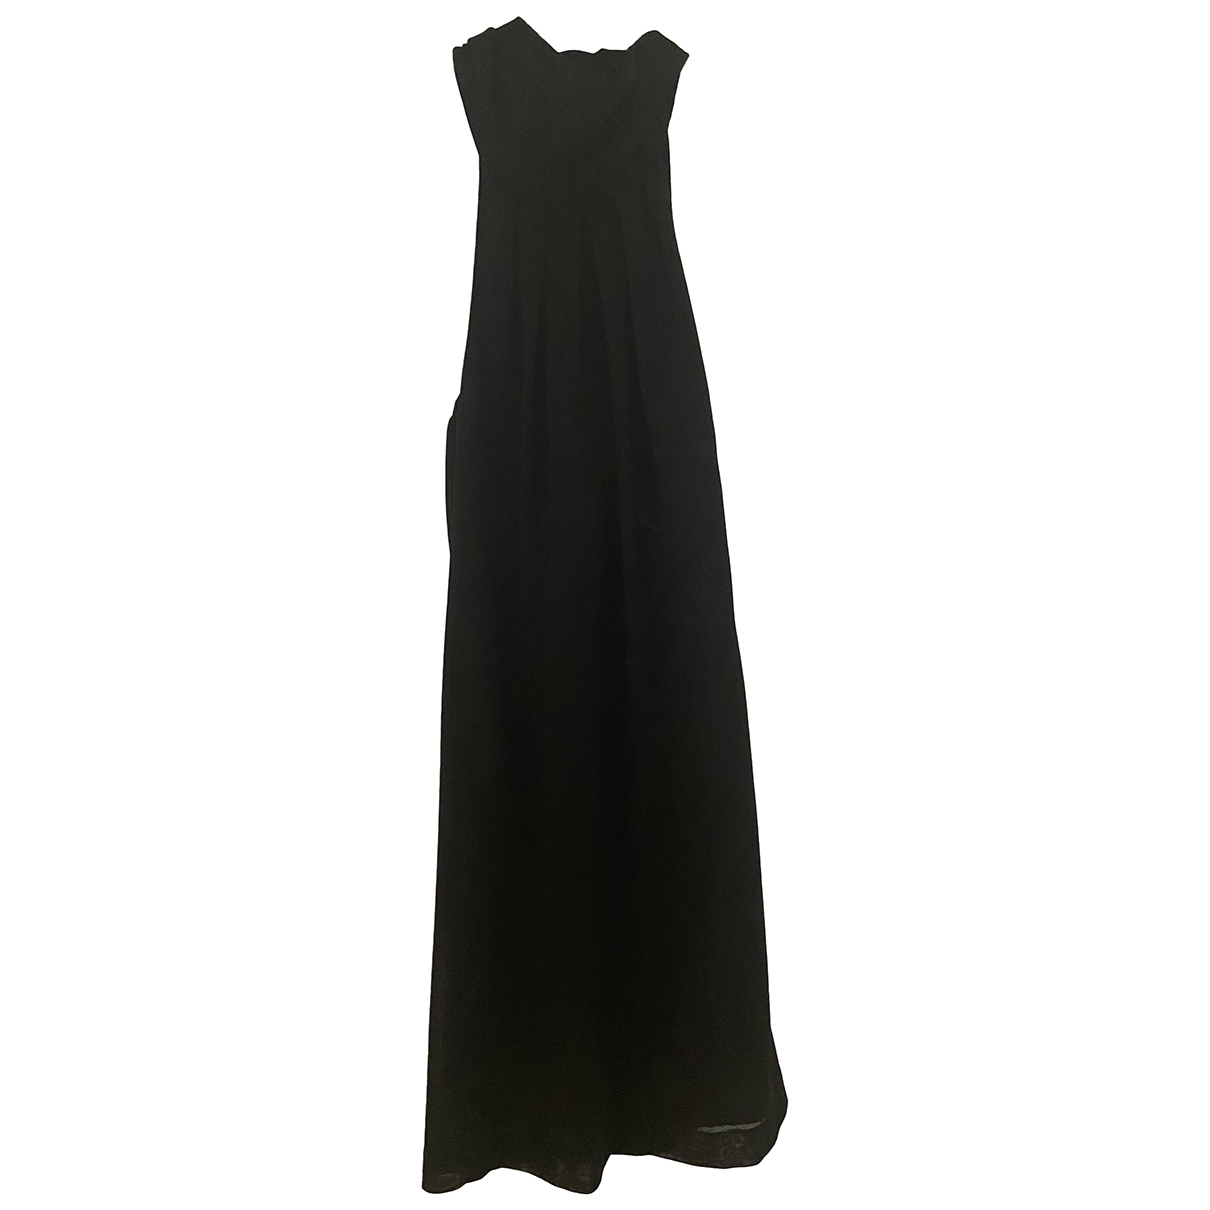 Tonello \N Black Wool dress for Women 42 IT